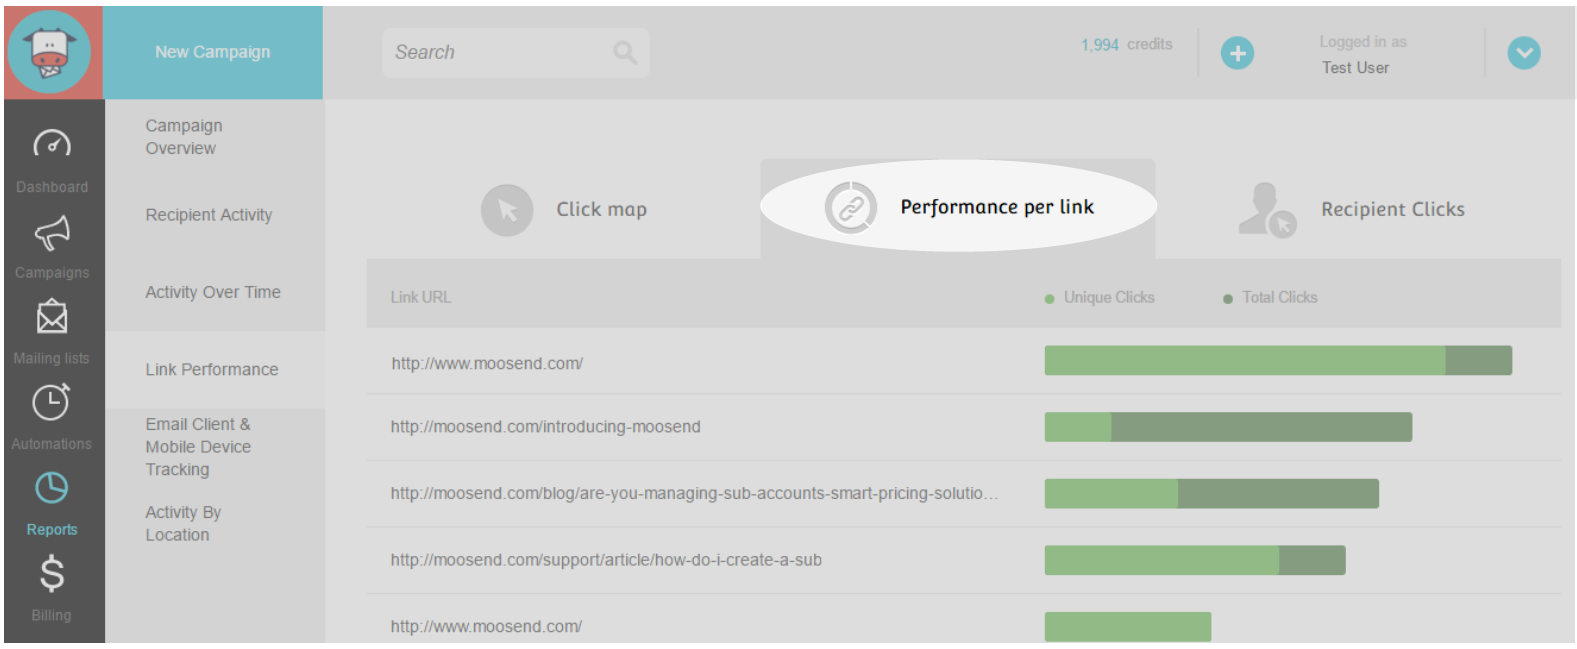 Most Popular Links Step 6 : Click on the performance per link tab